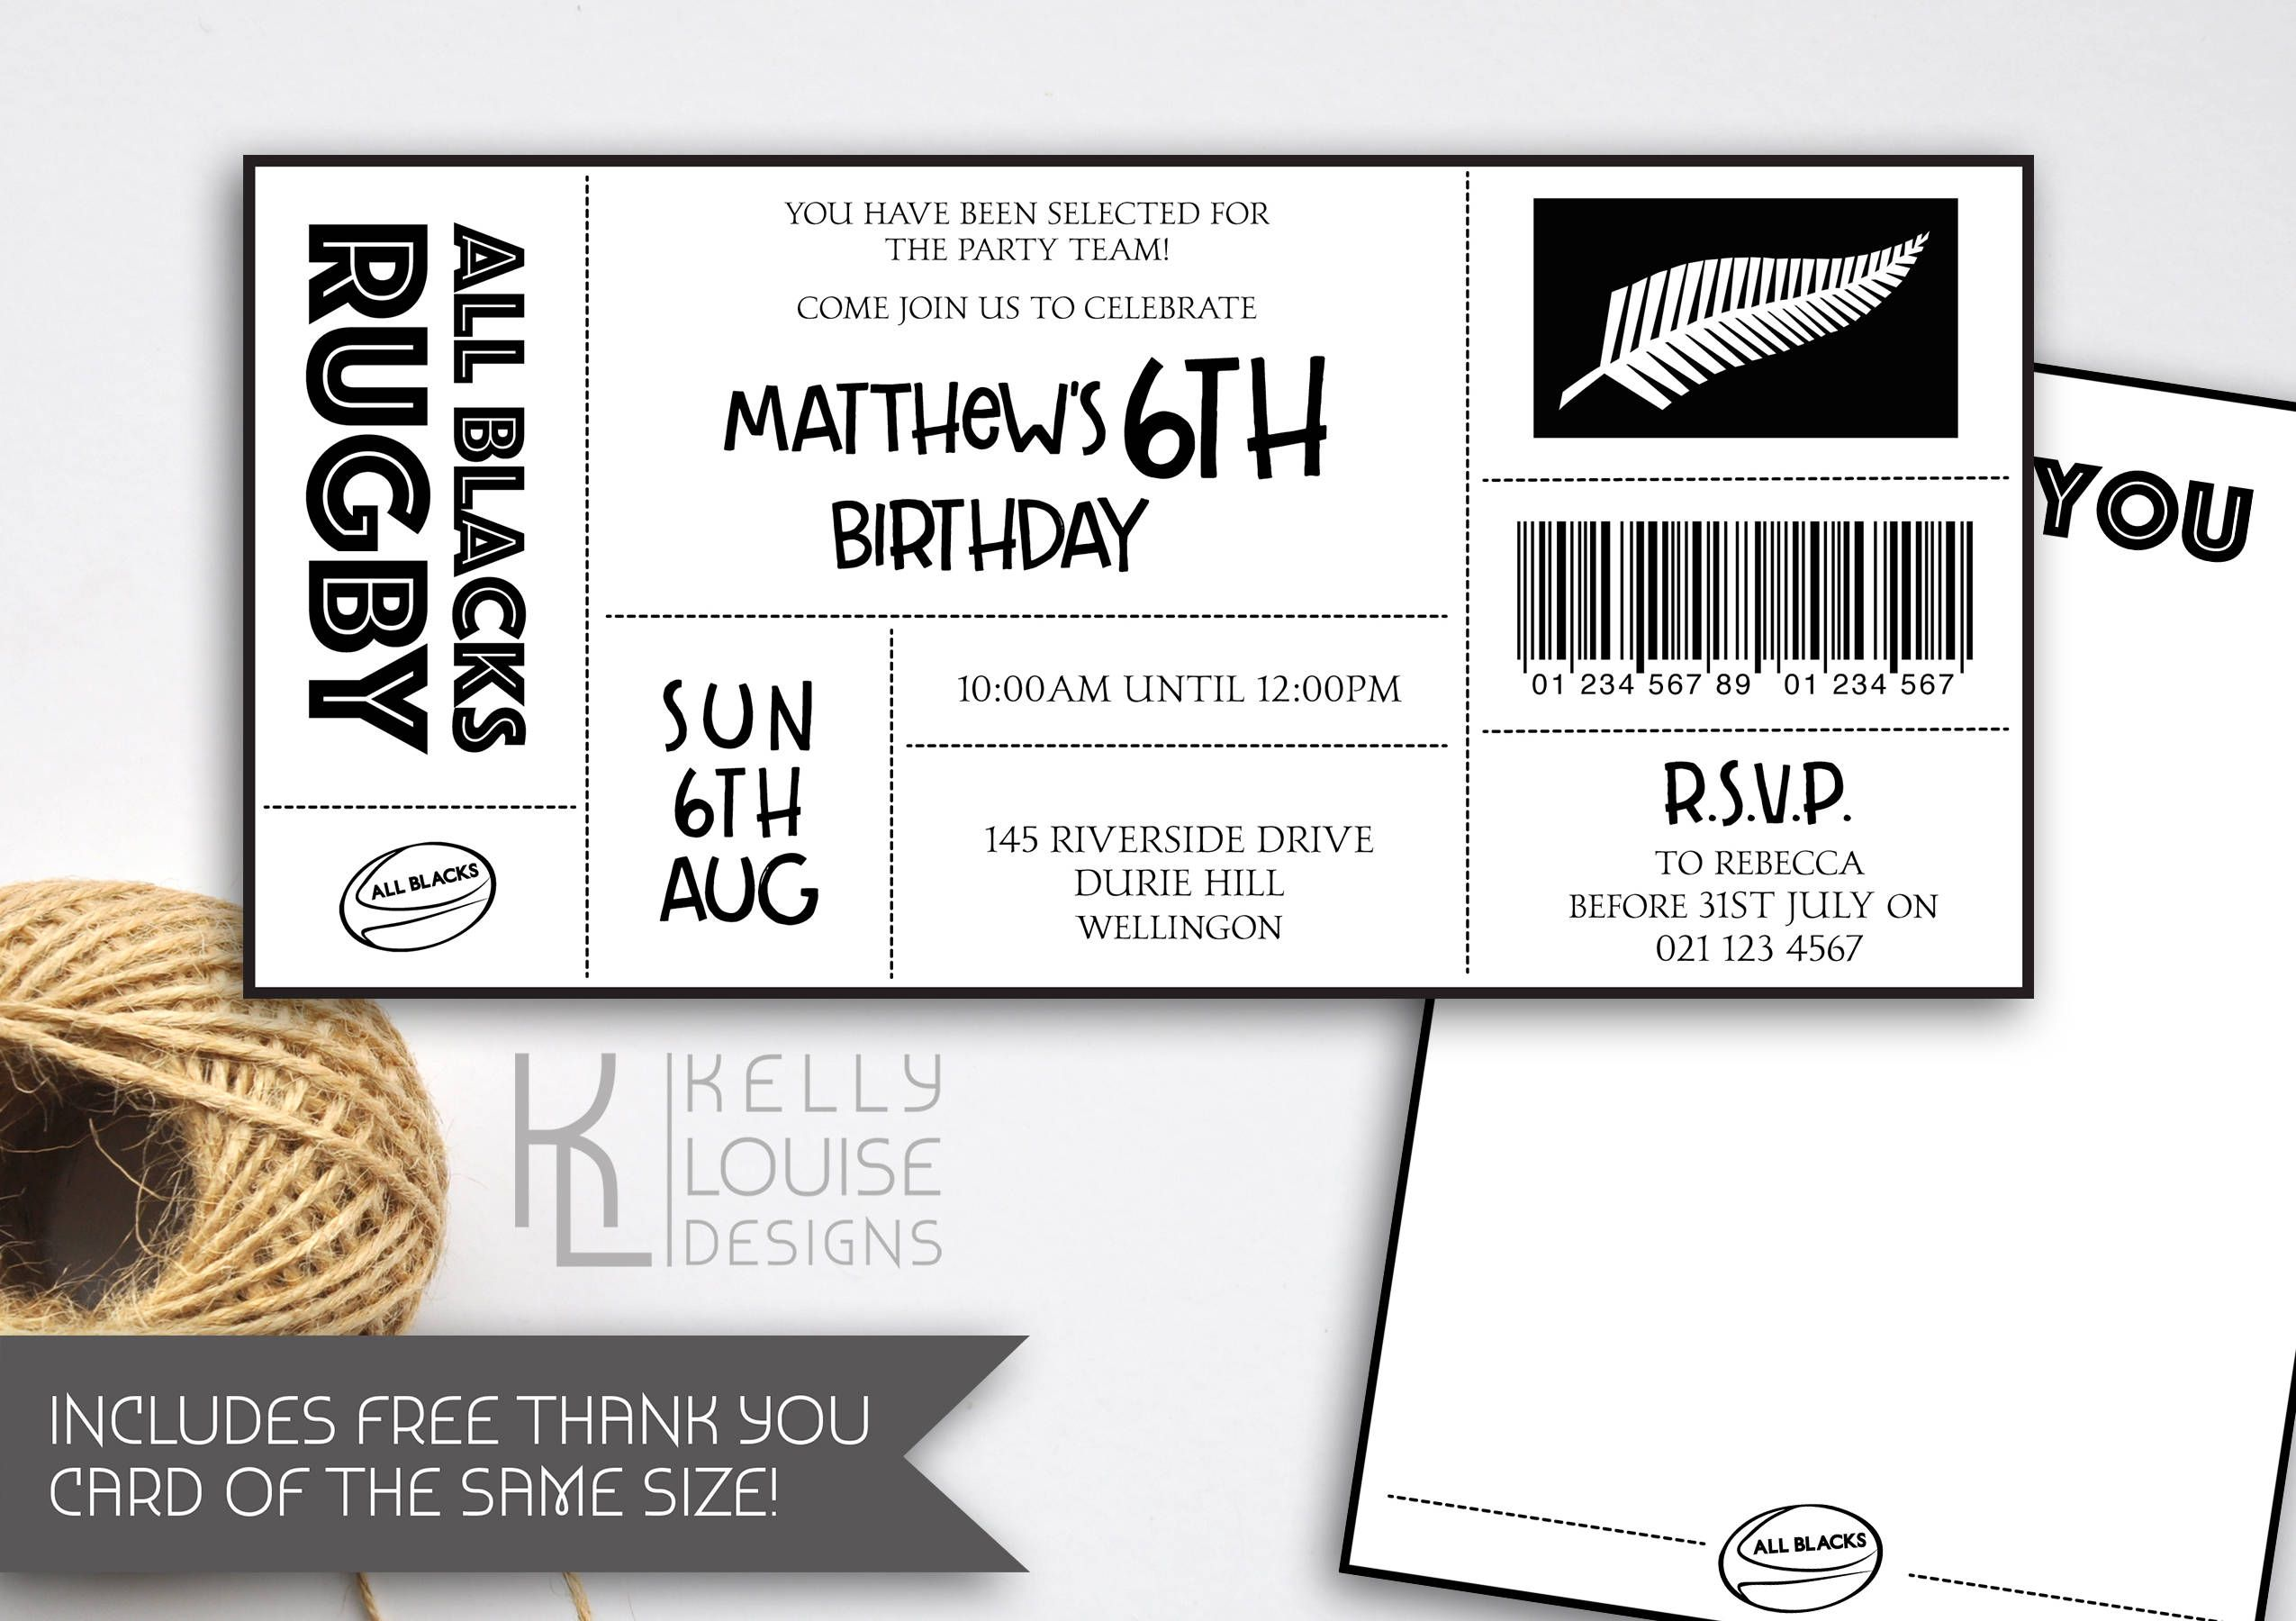 All blacks birthday invitation rugby birthday party all blacks all blacks birthday invitation rugby birthday party all blacks rugby party all blacks rugby ticket invitation nz rugby 187 stopboris Image collections